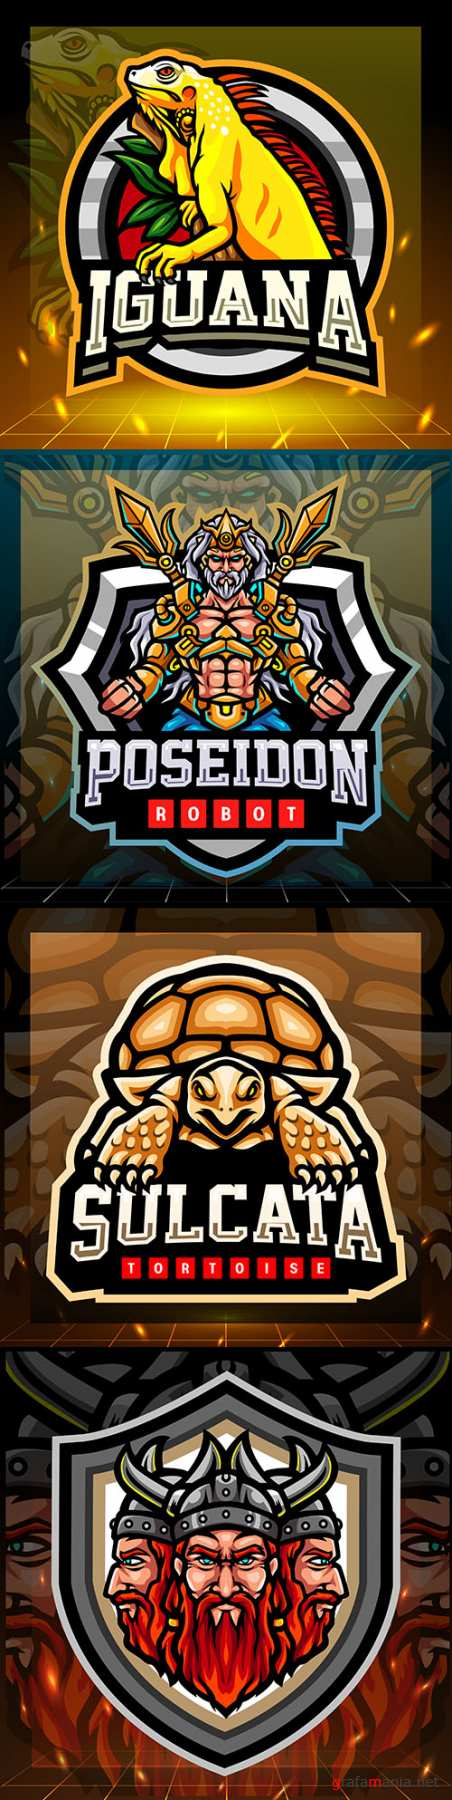 Mascot emblem gaming design cybersport illustration 8